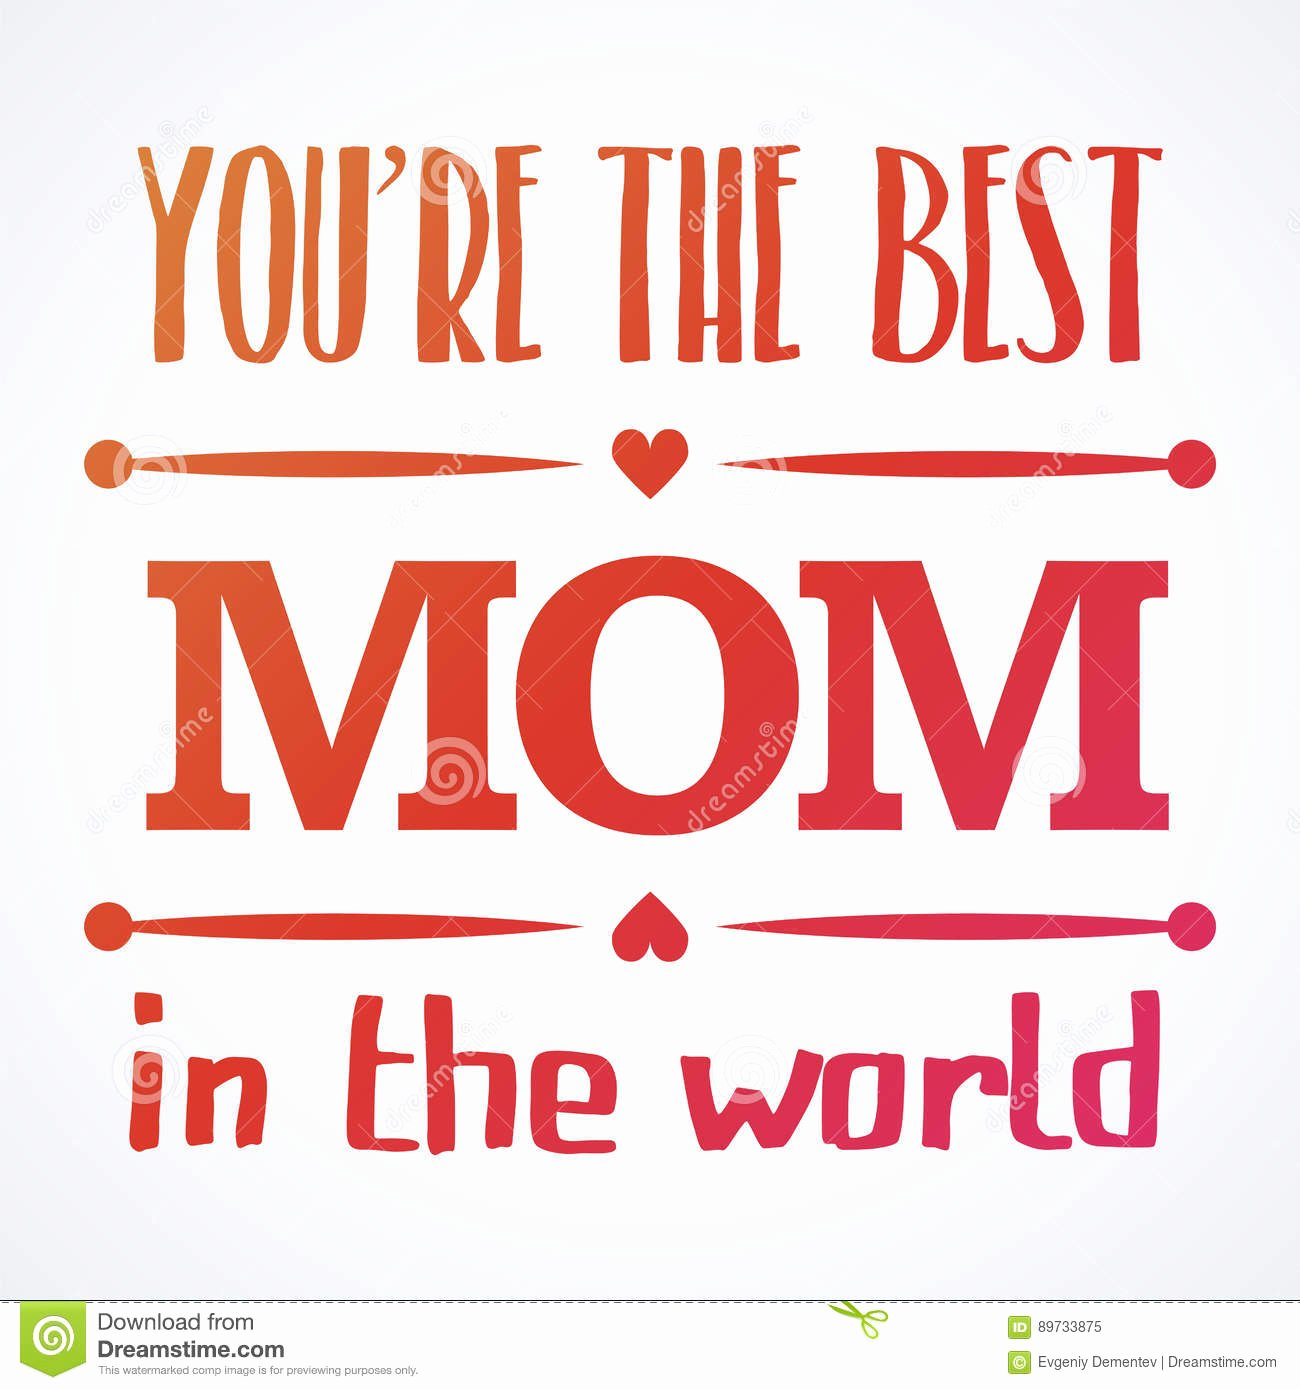 Best Mom In the World Award Lovely Happy Mothers Day Typographical Illustration the Best